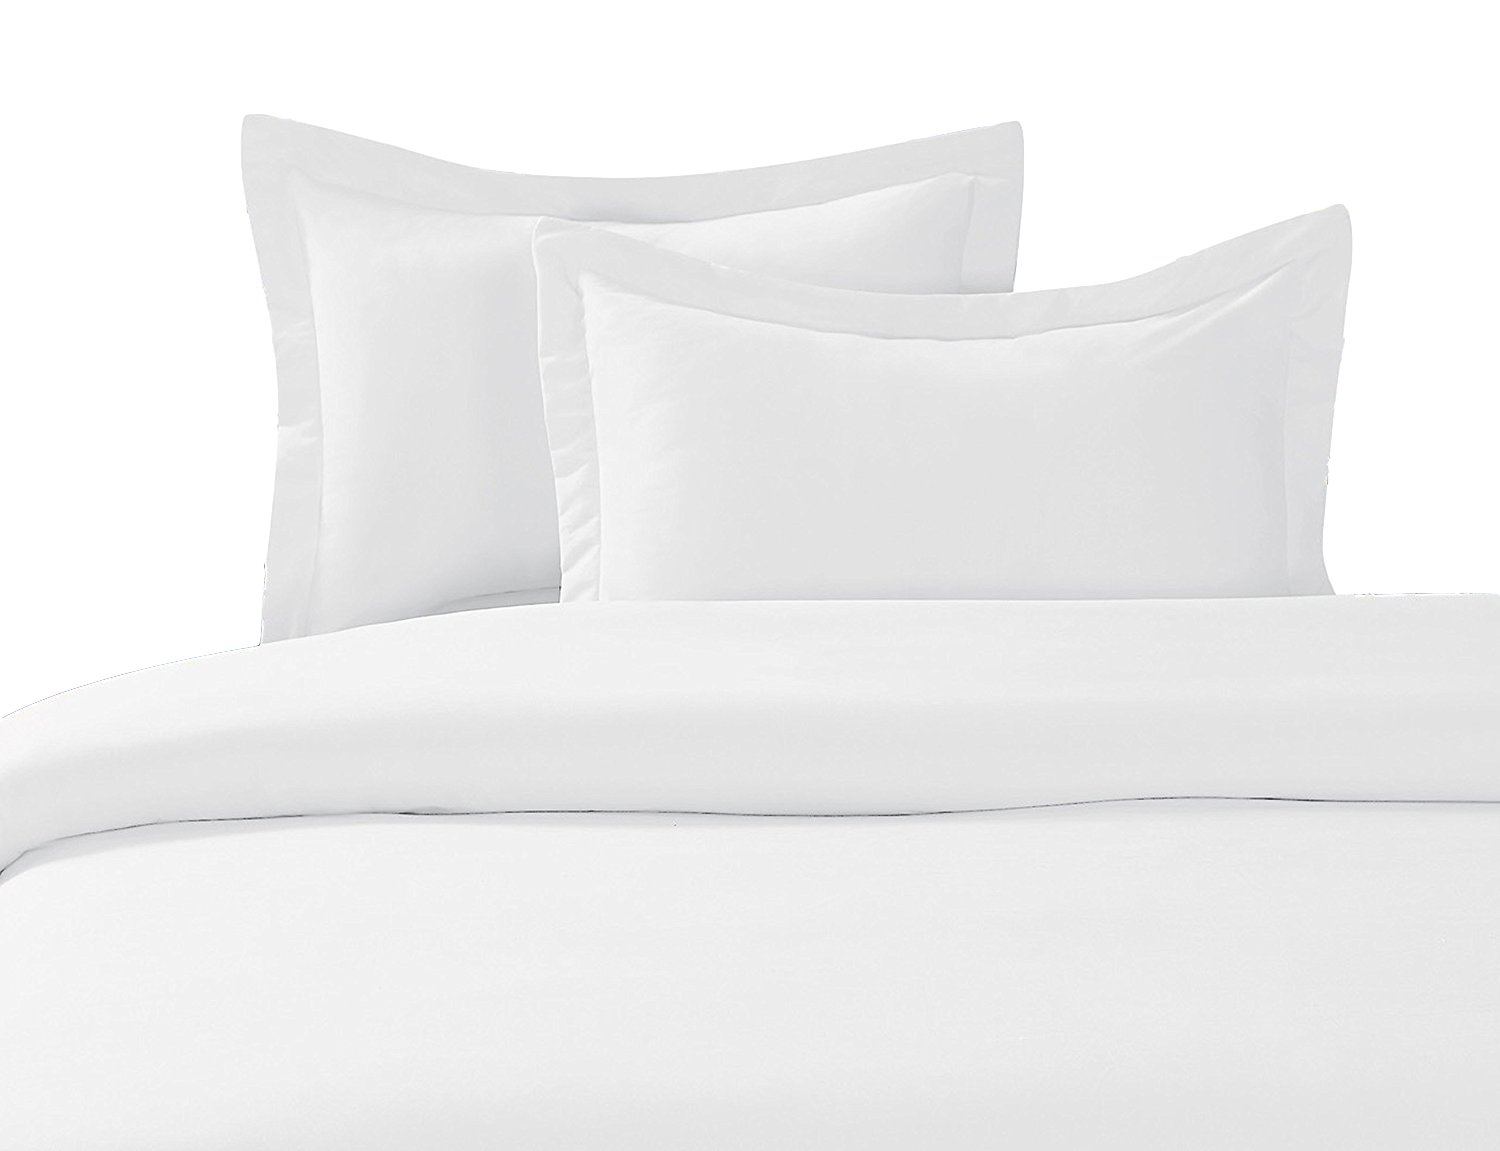 100% Cotton- Duvet Cover Set with Buttons Enclosure, 300TC - Solid White, Twin/Twin Extra Long (XL), 2PC Duvet Covers